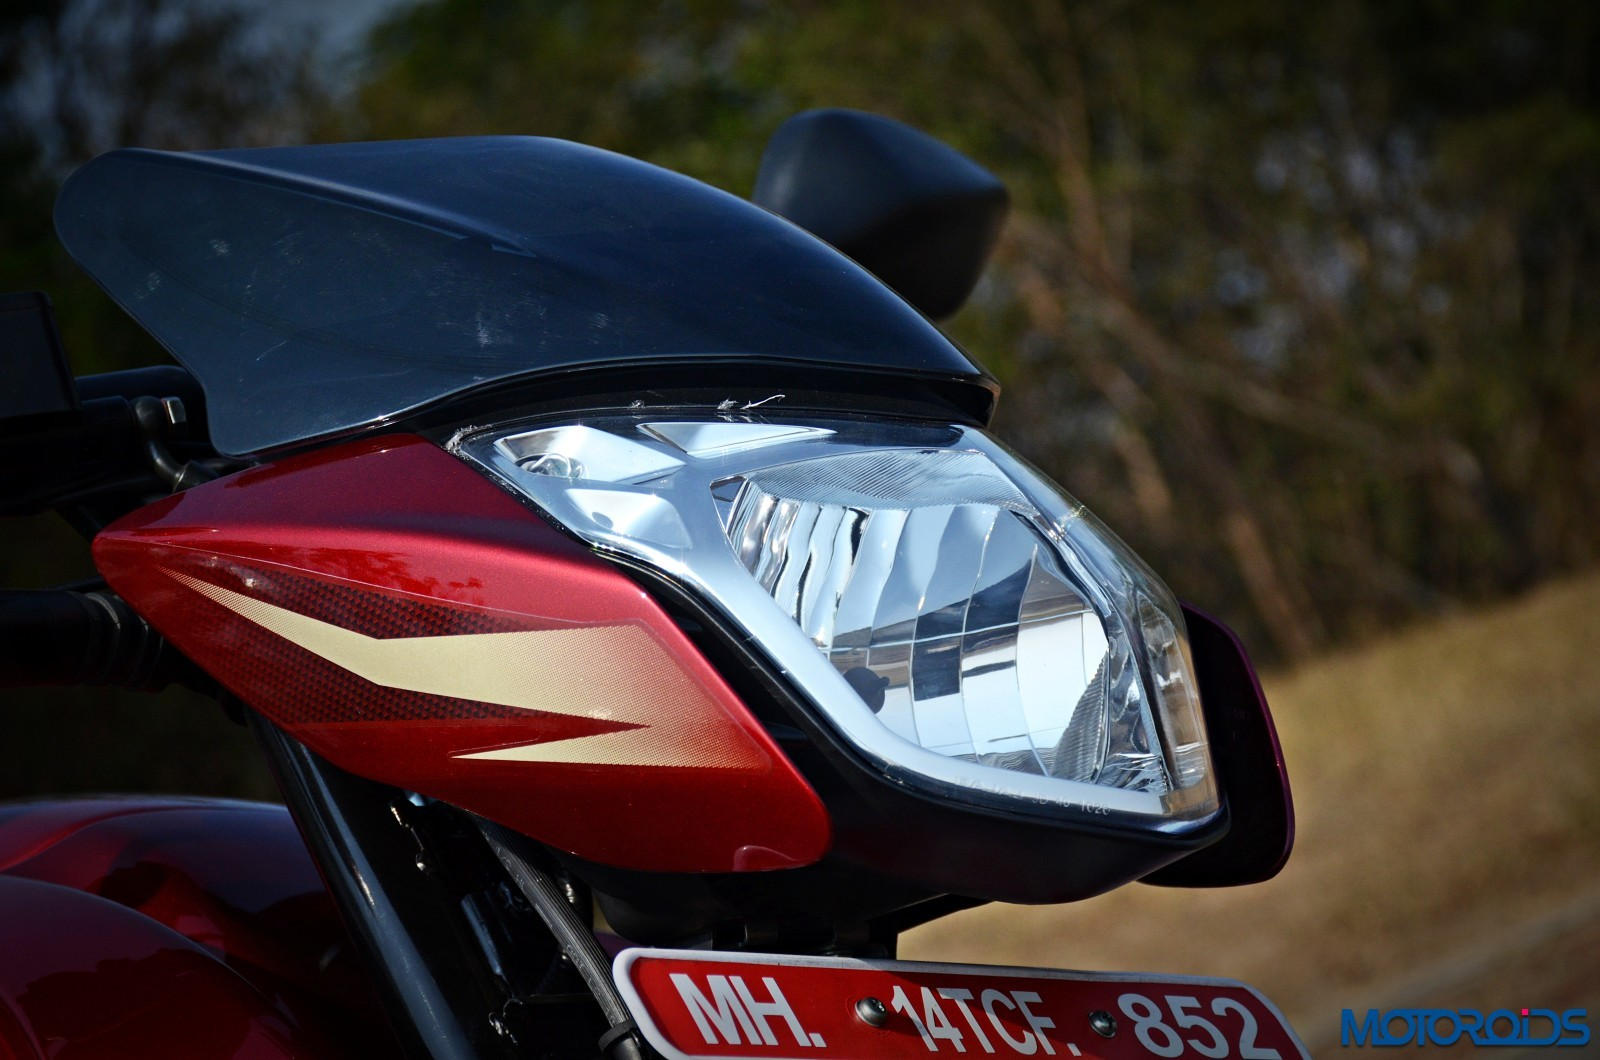 new-2017-Pulsar-135LS-headlamp